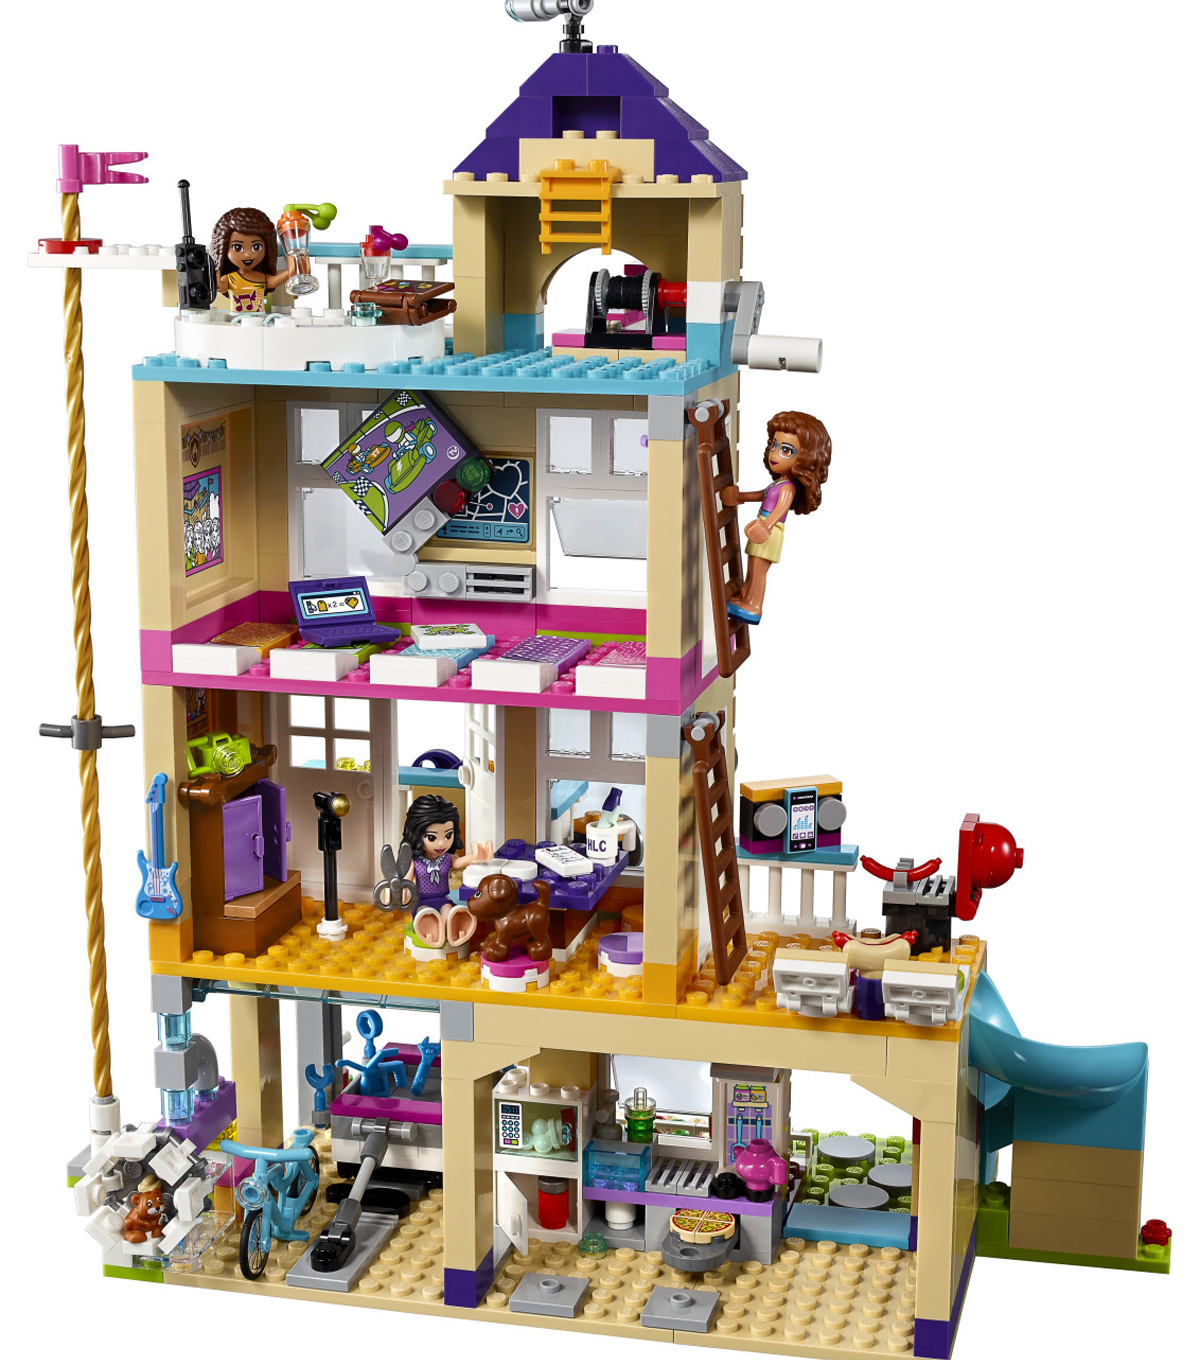 Lego Friends 41340 Friendship House instruction manual BOOKS ONLY new